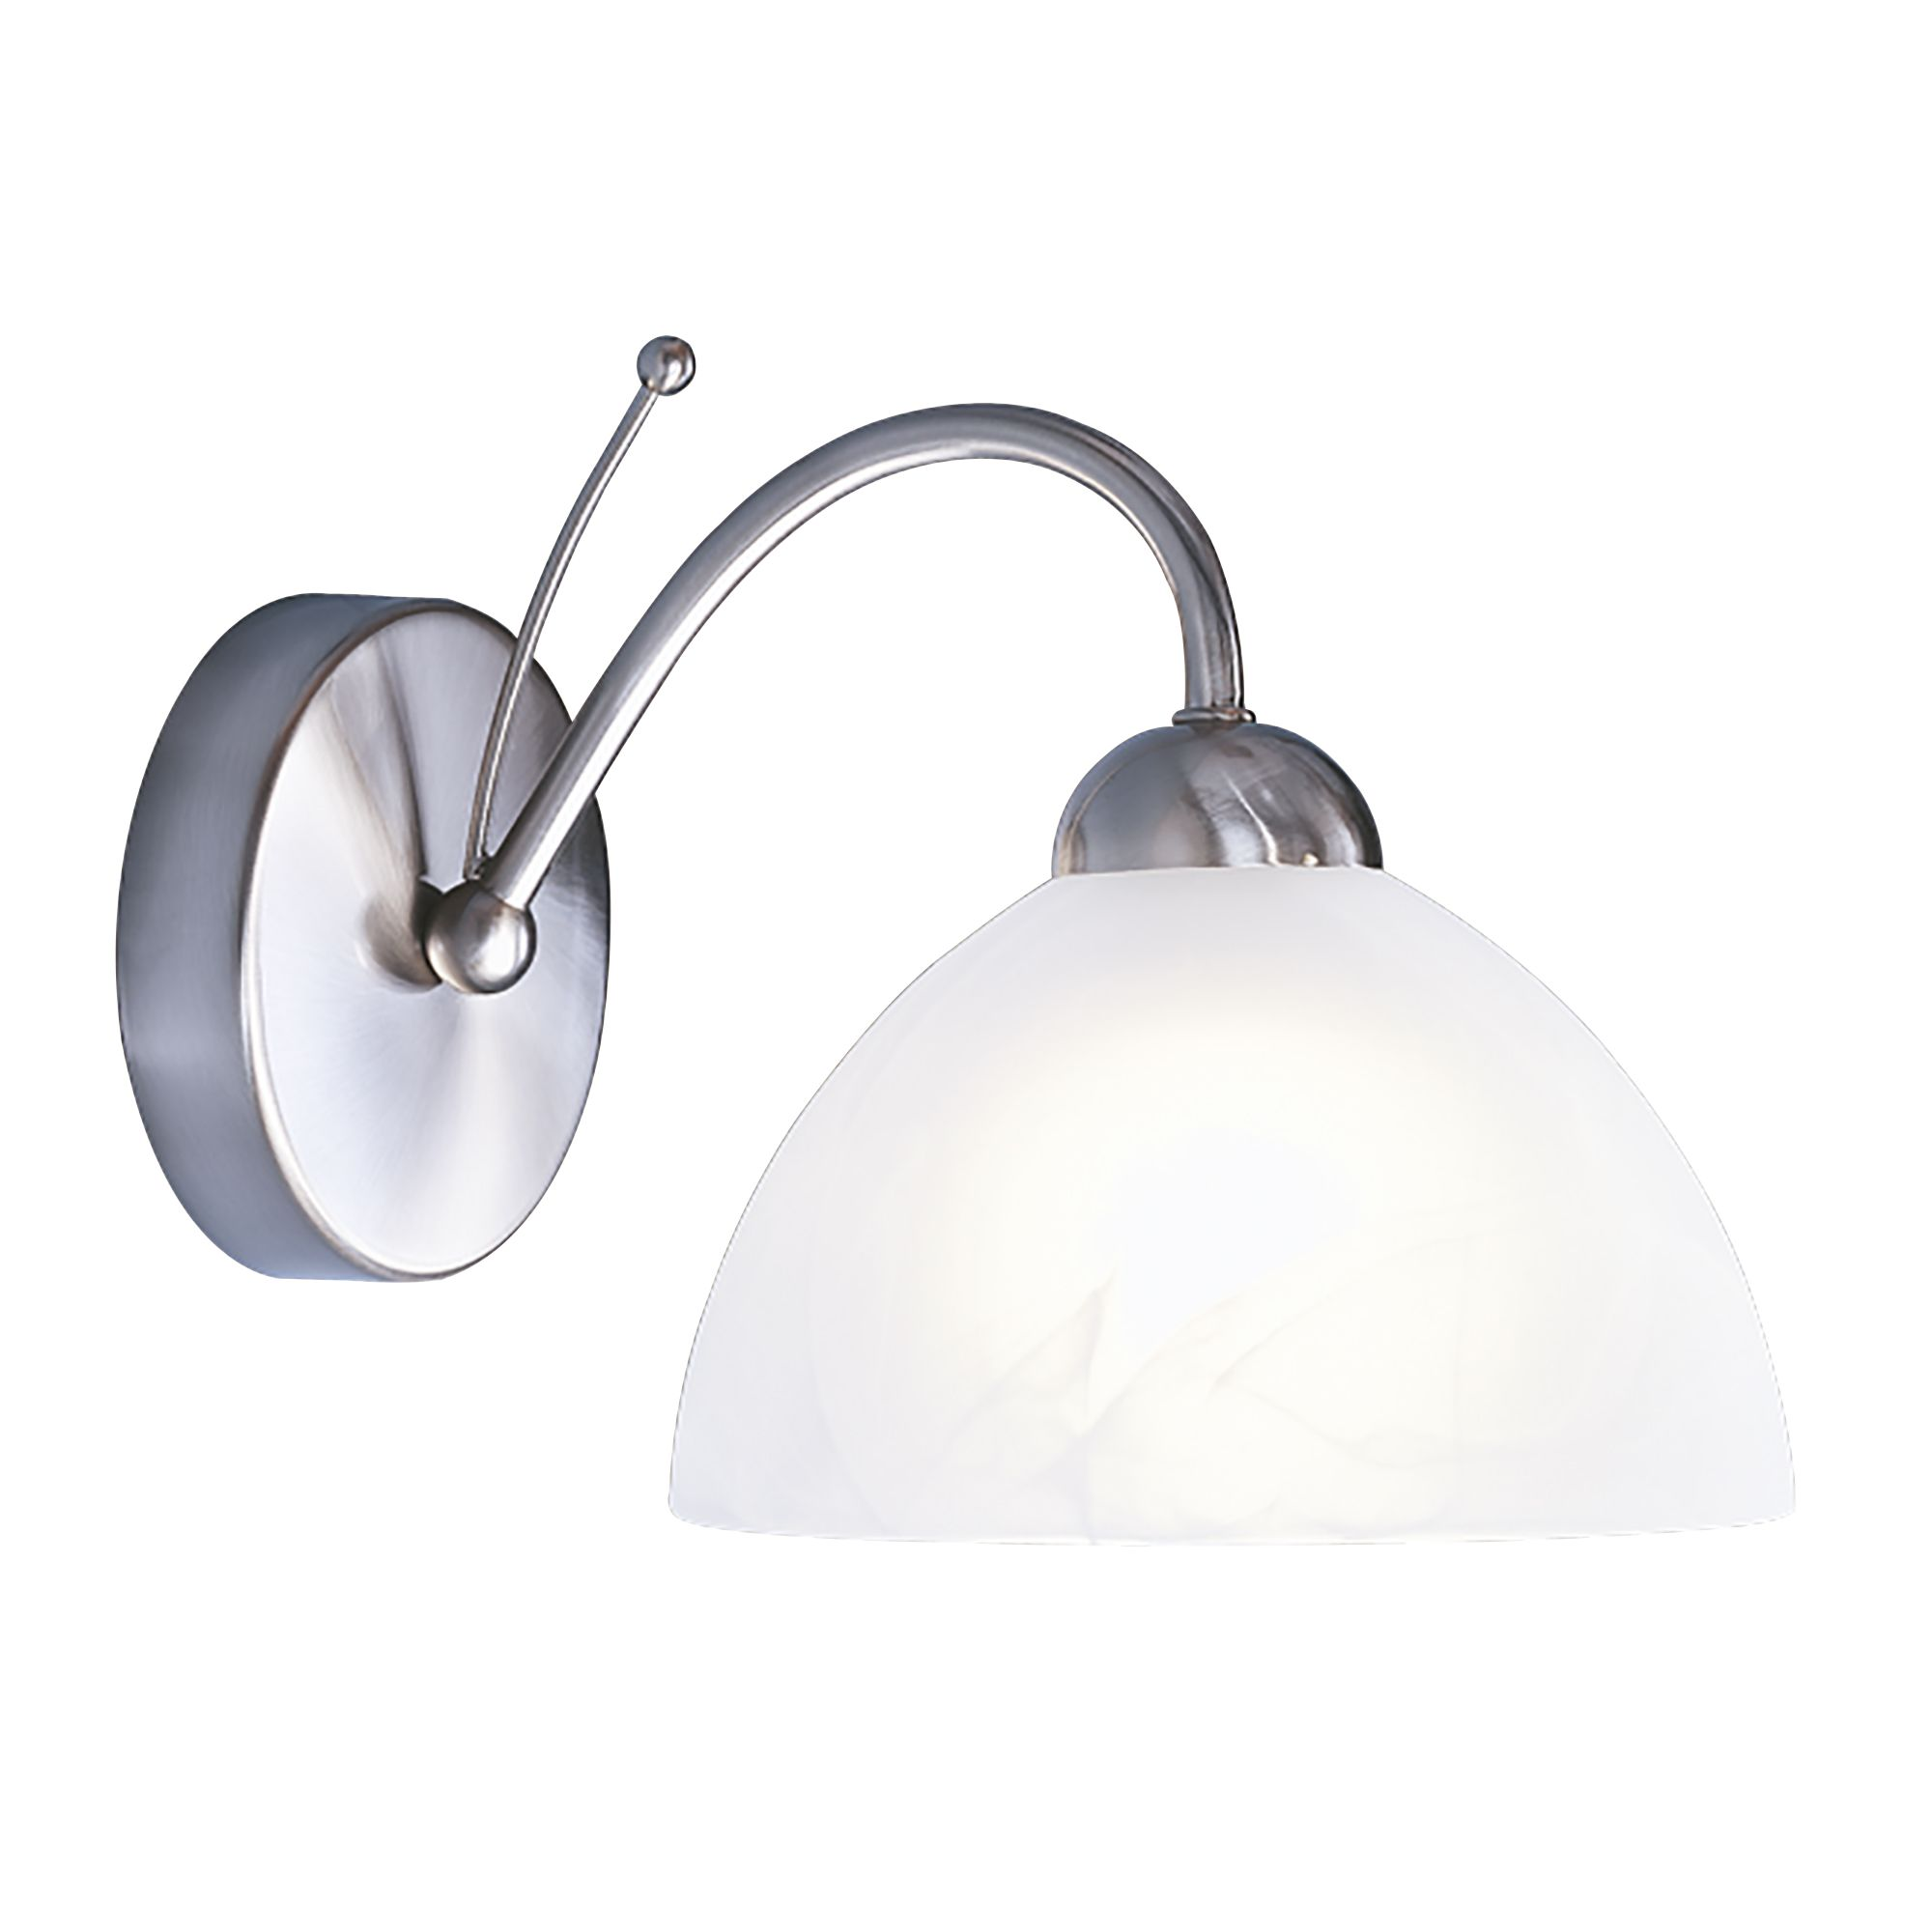 Milanese Satin Silver Wall Light With Alabaster Glass